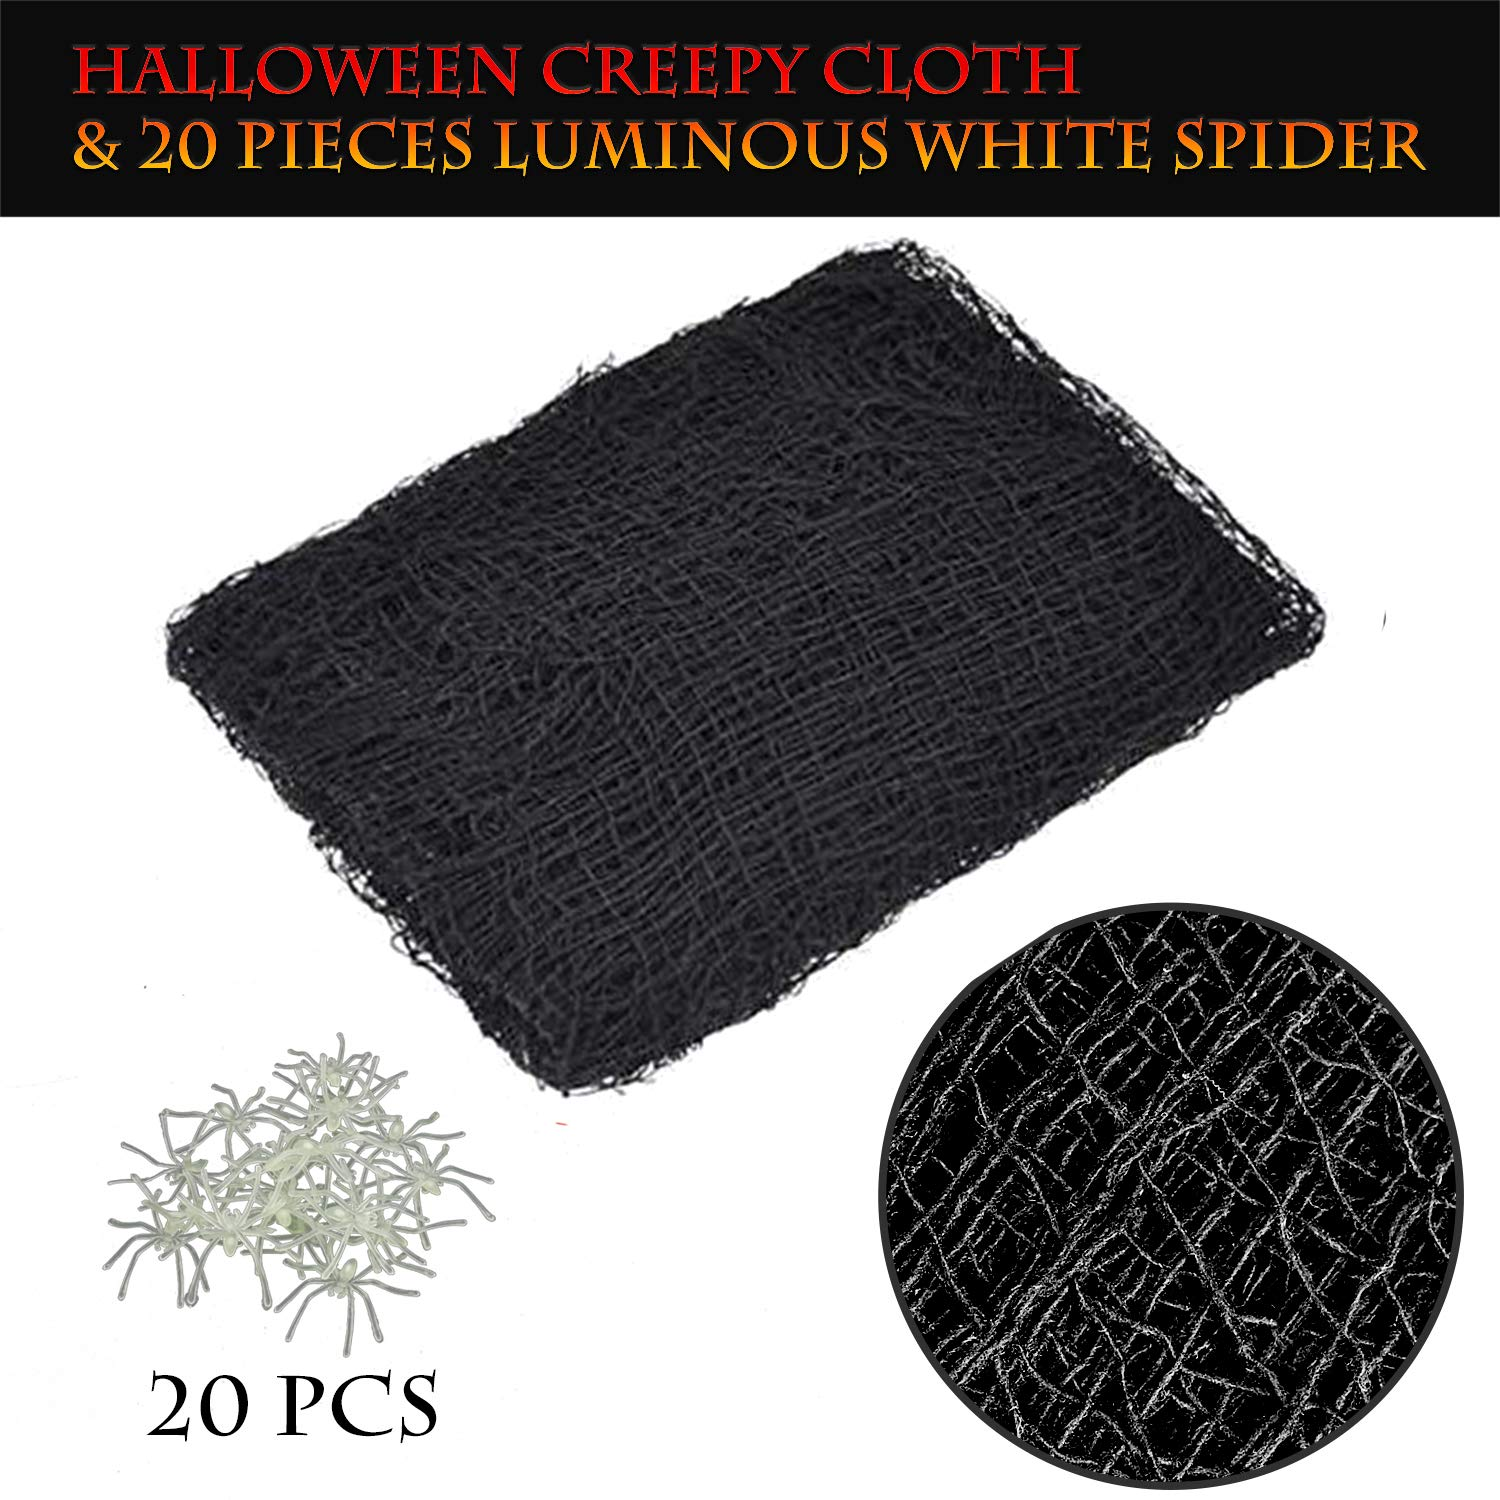 SEVENS 9 Yards Halloween Creepy Cloth Party Supplies Decorations Outdoor Yard House Office Wall Decor with 20PCS Luminous Spiders